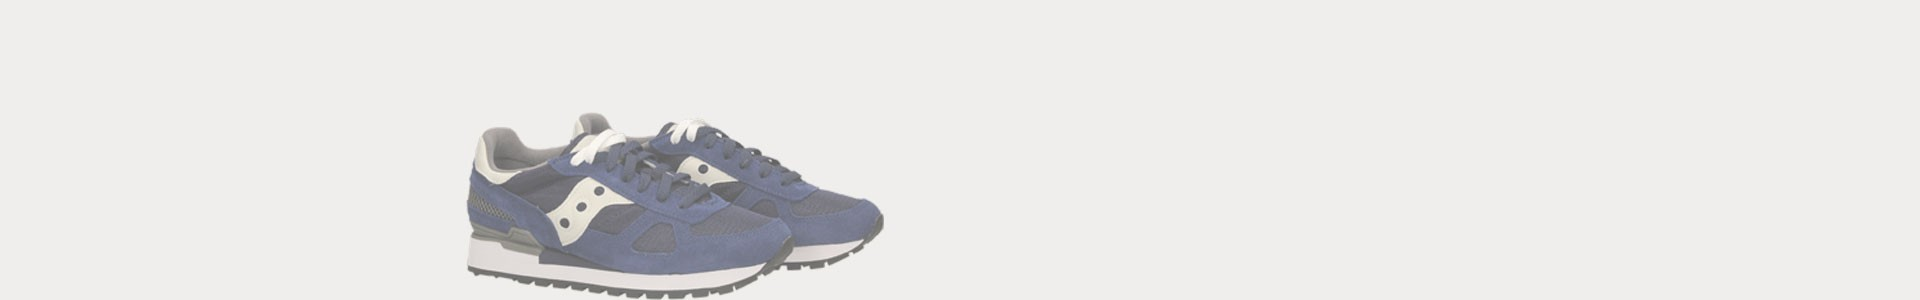 Sneaker Uomo online | Acquista su AnyGivenSunday.Shop